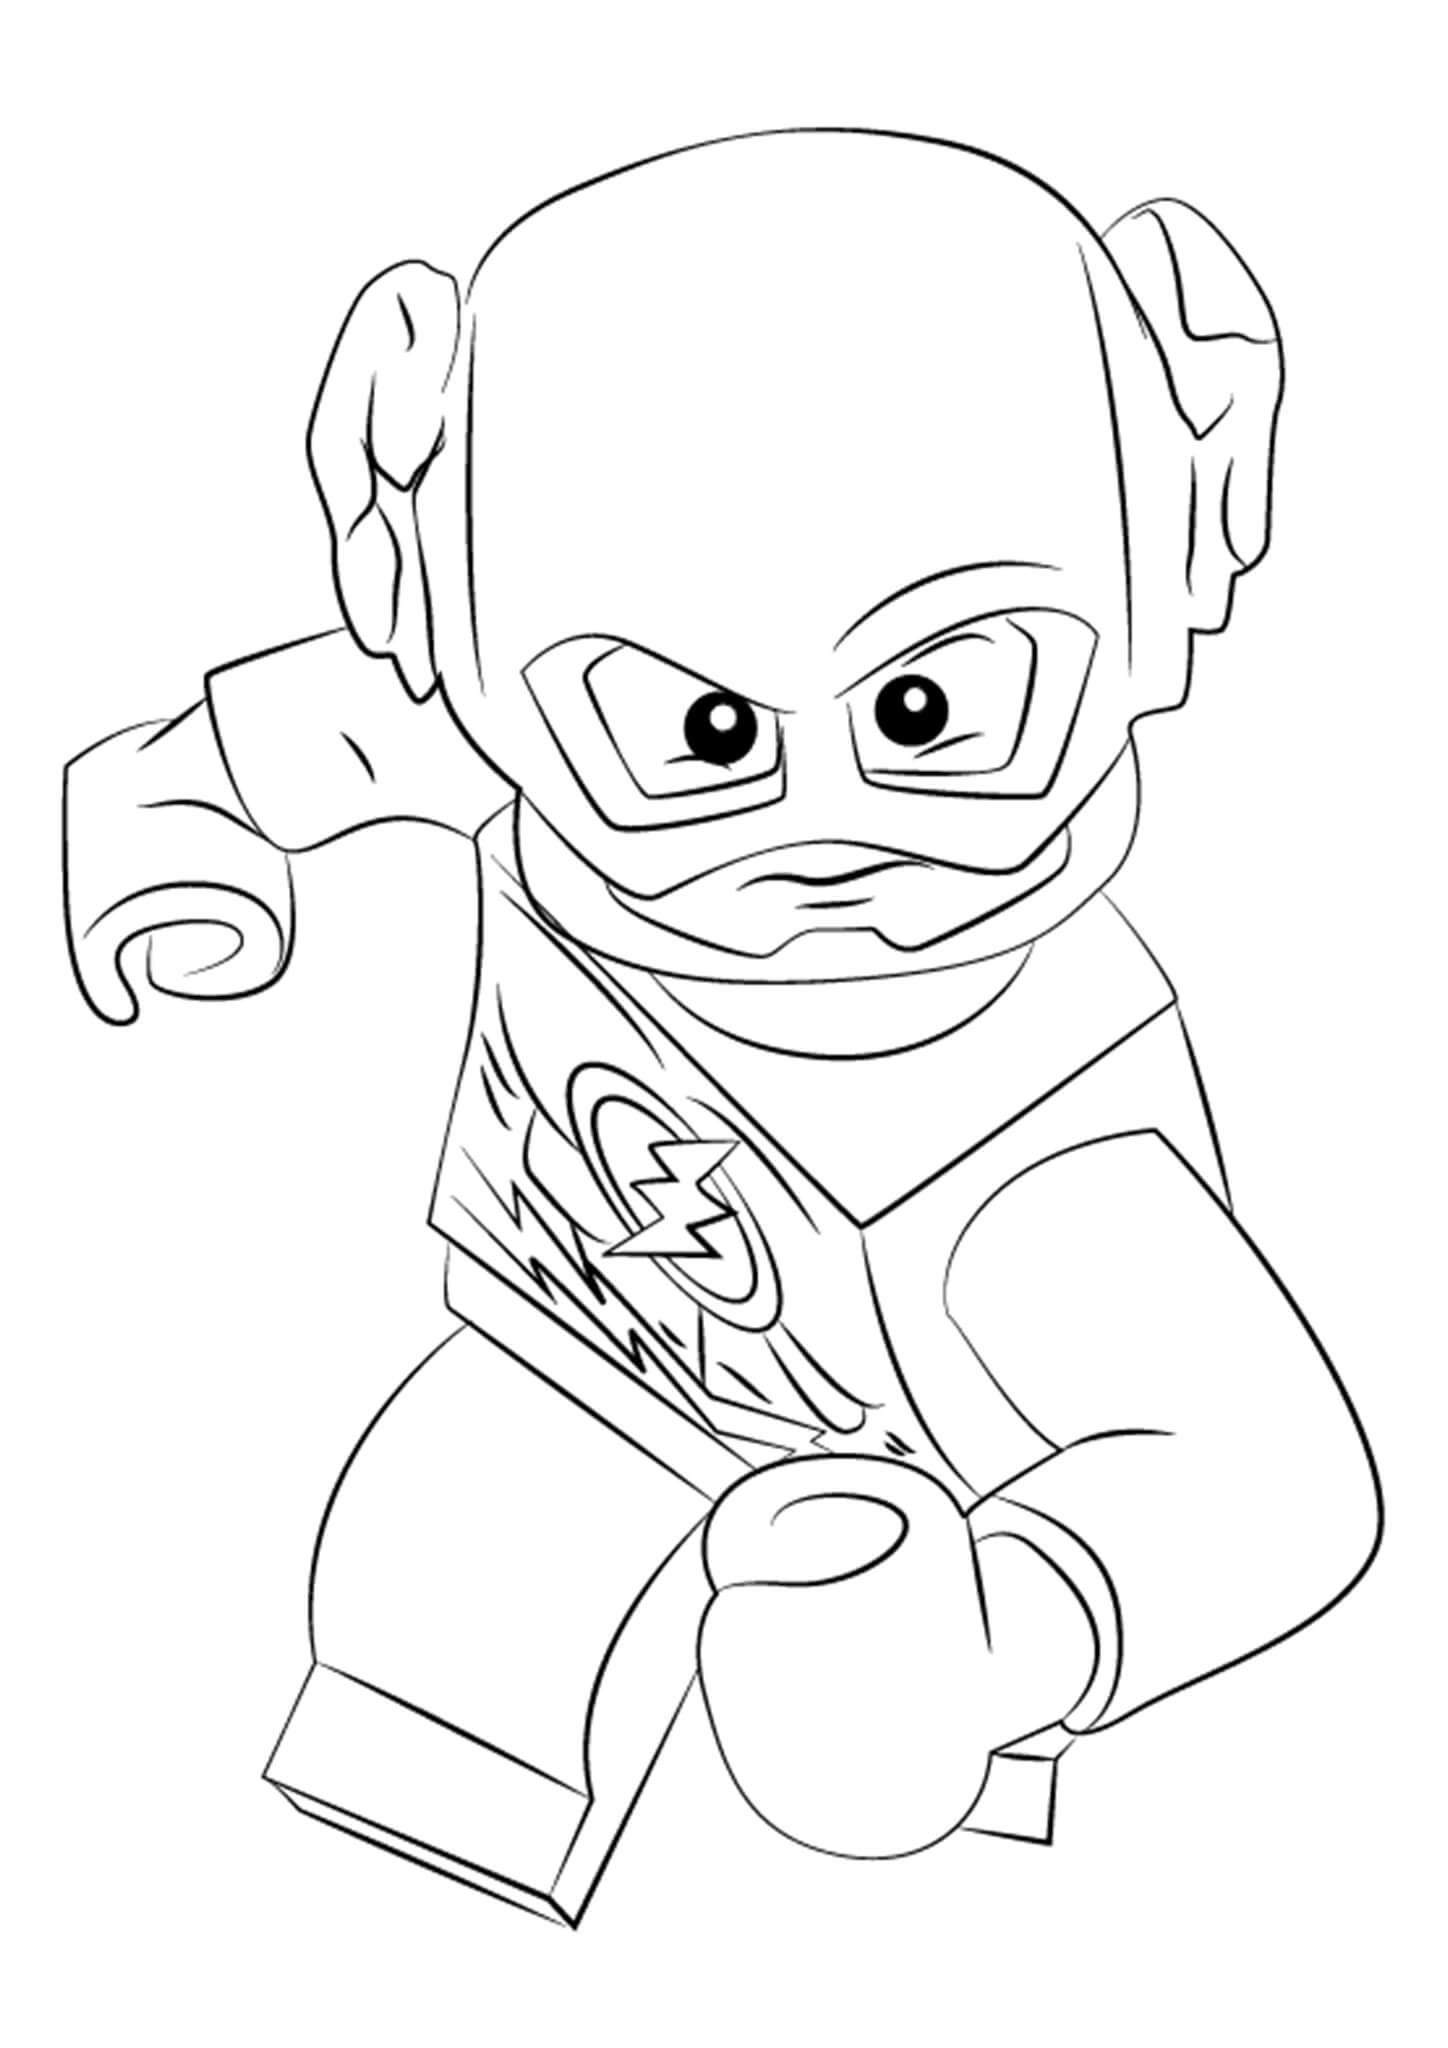 Free Easy To Print Flash Coloring Pages Lego Coloring Pages Lego Coloring Superhero Coloring Pages